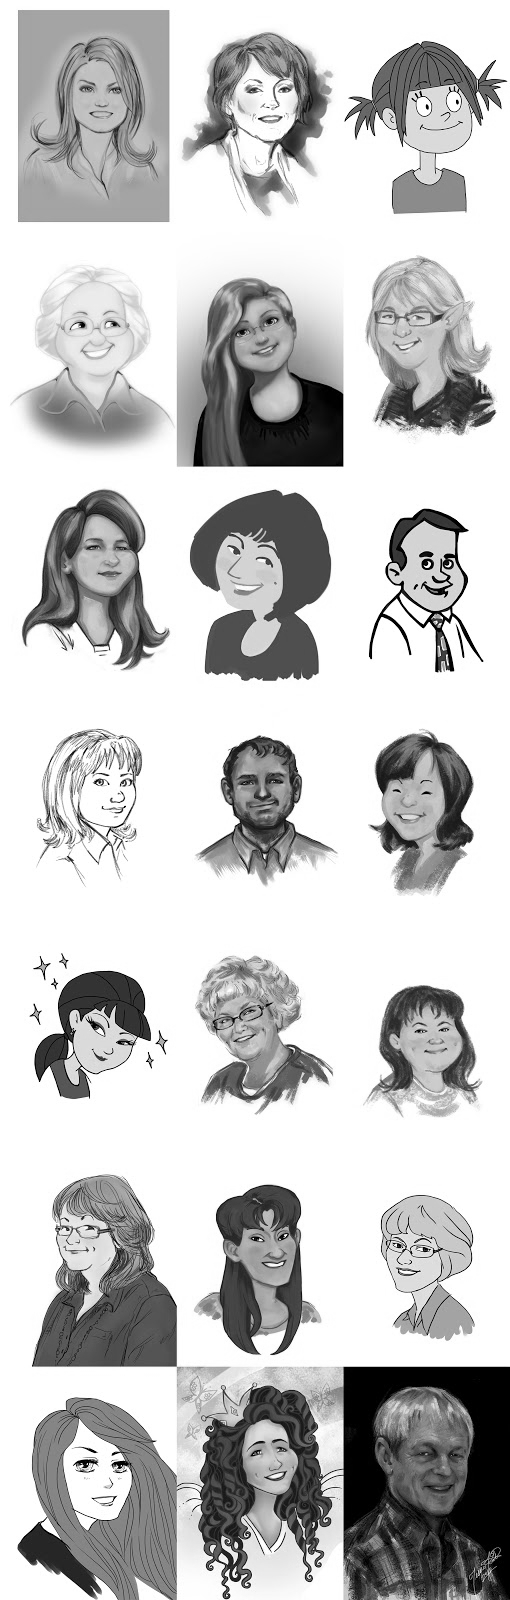 StaffPortraits-3.jpg